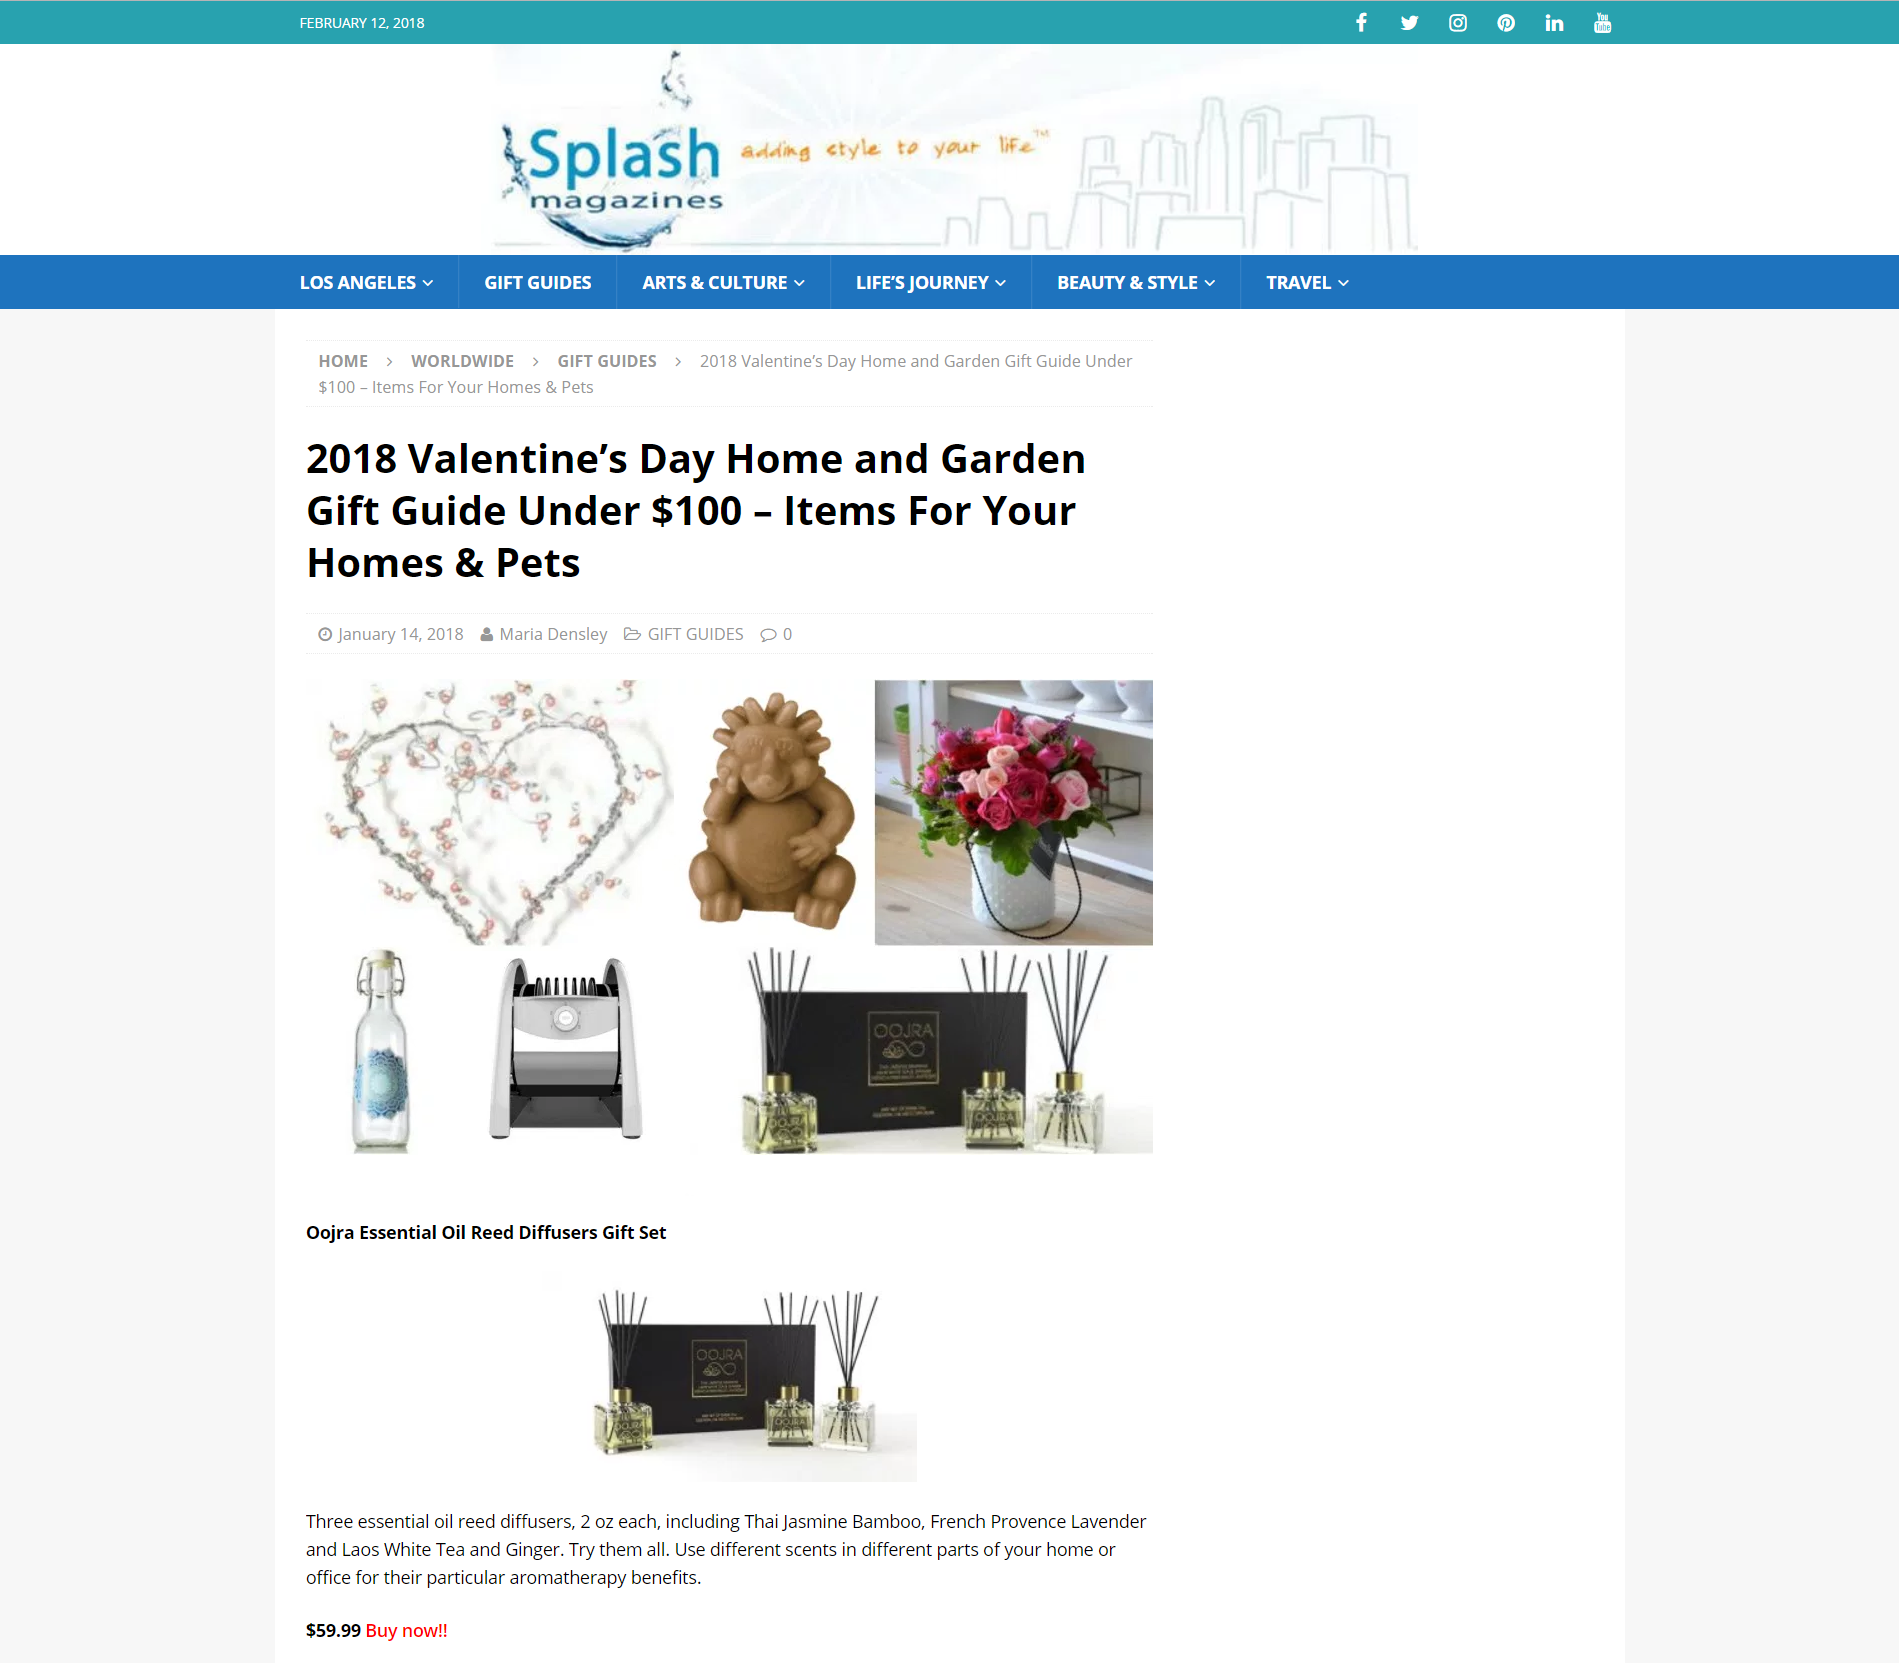 Splash Magazine Features Oojra As A Valentine S Gift Idea Under